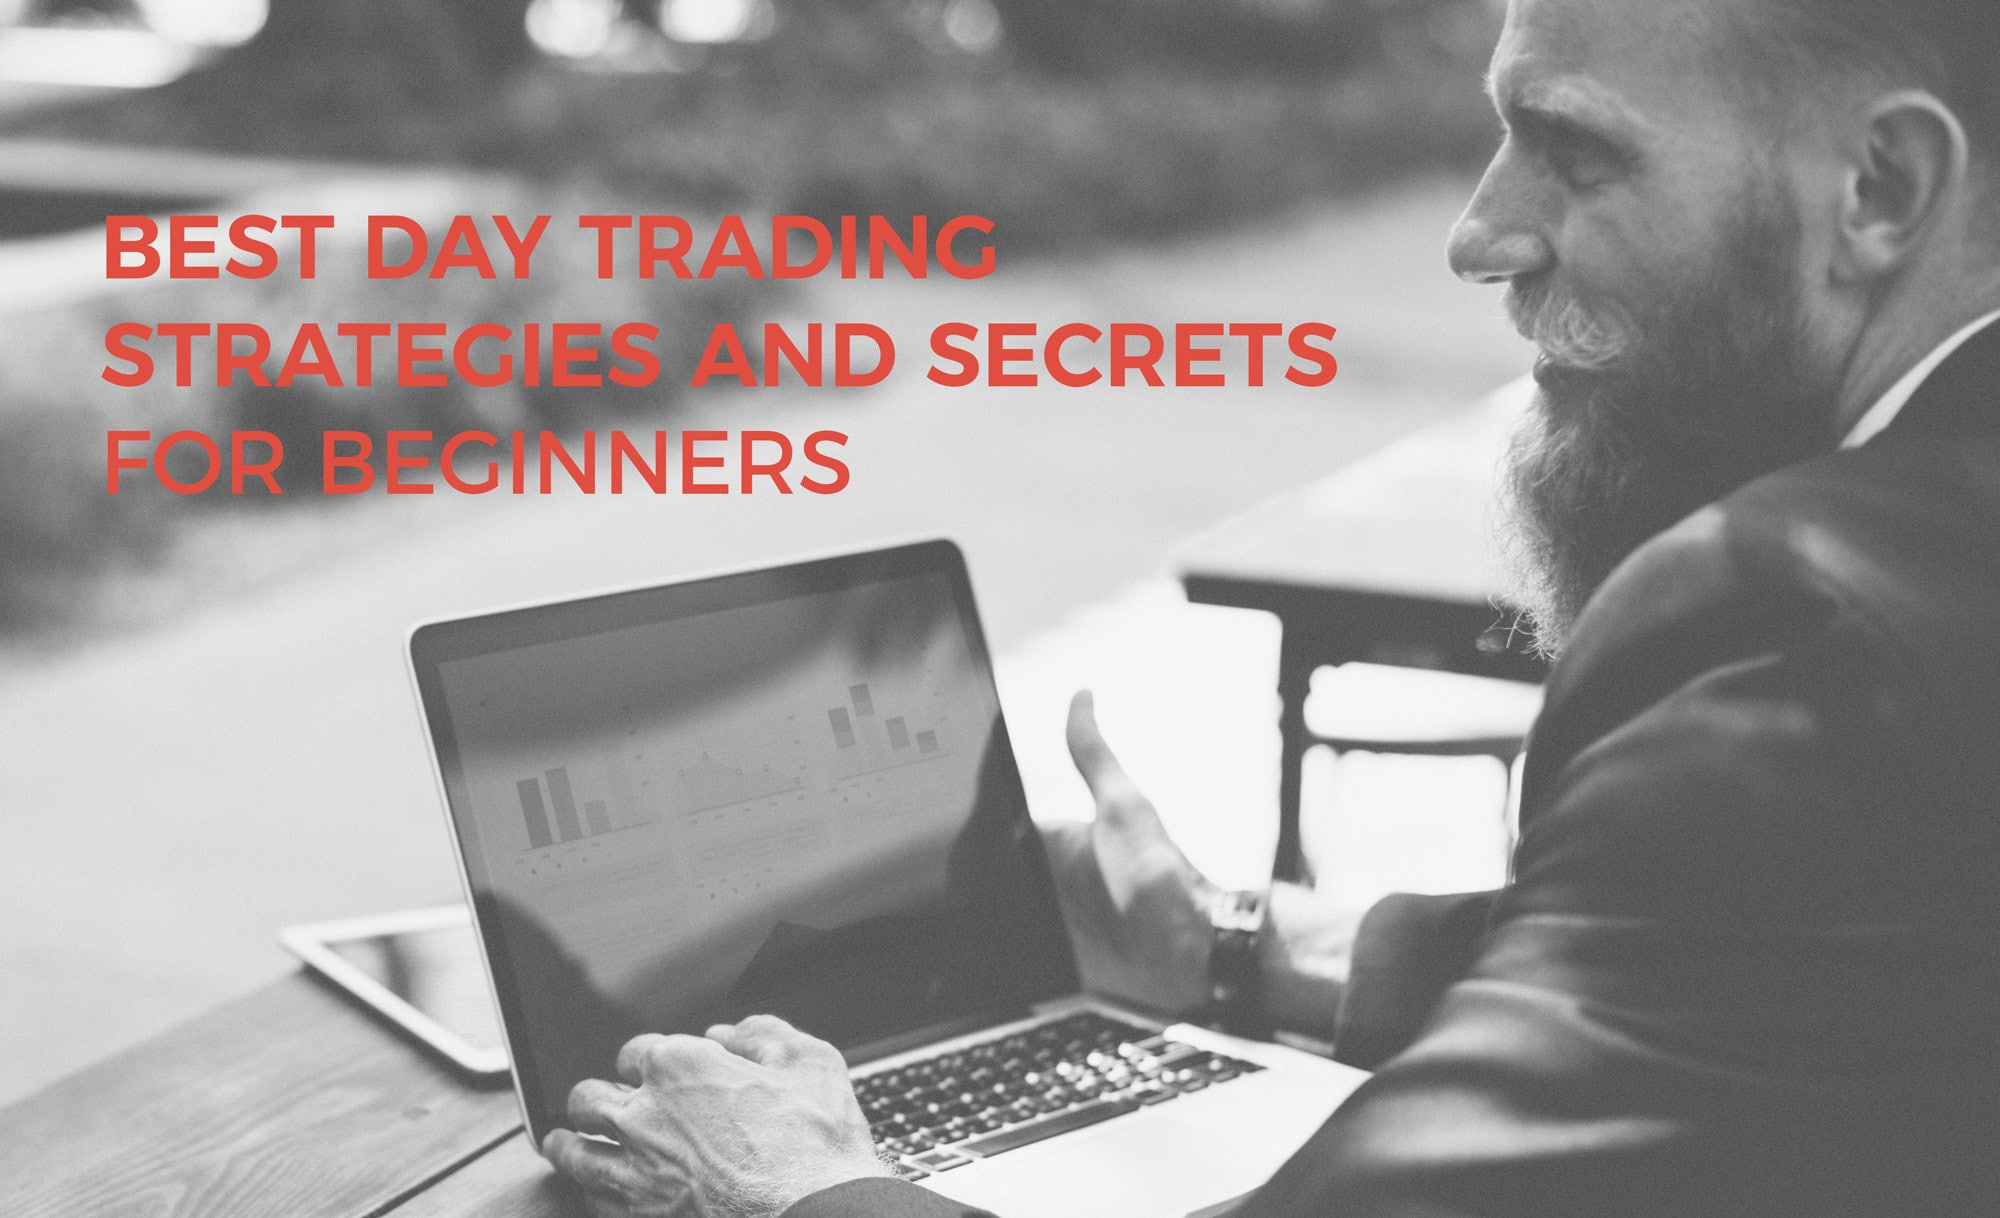 Best Day Trading Strategies and Secrets for Beginners